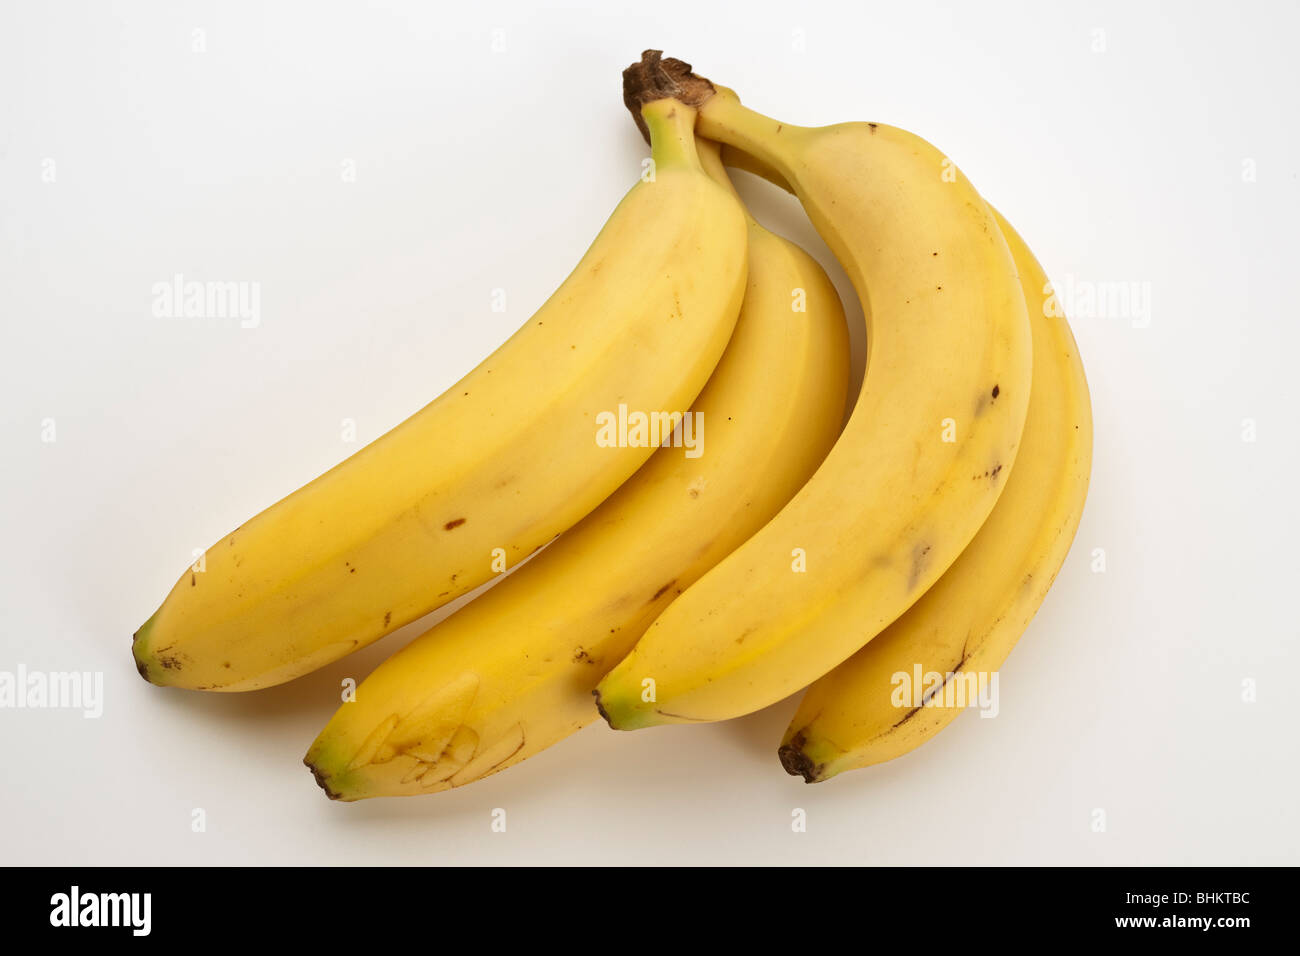 four joined yellow ripe bananas - Stock Image